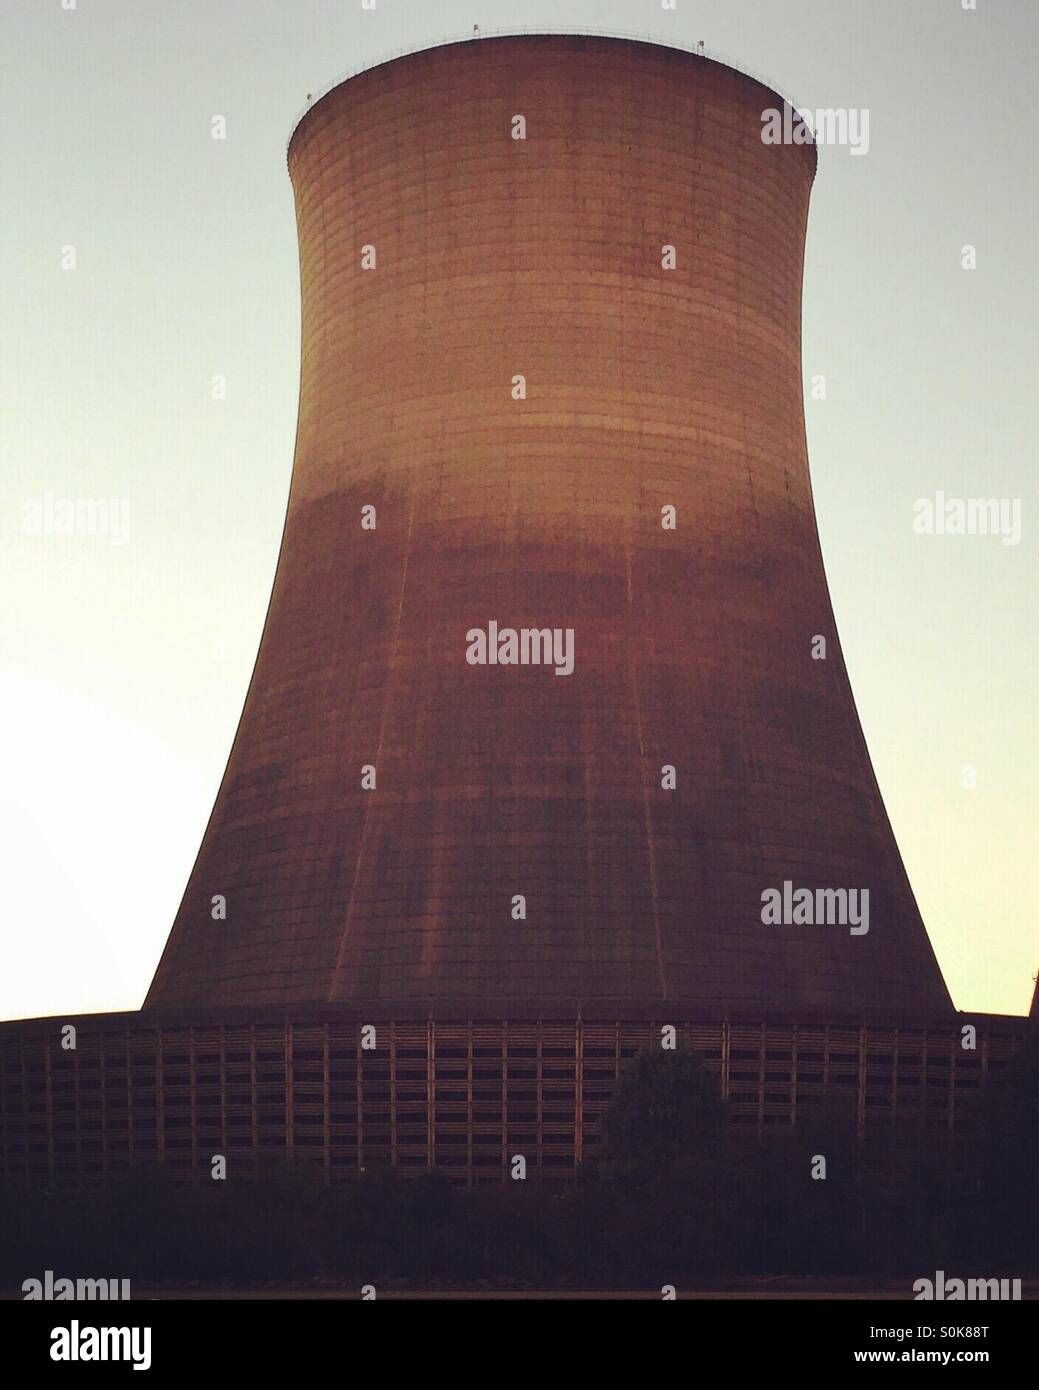 Nuclear reactor cooling tower - Stock Image